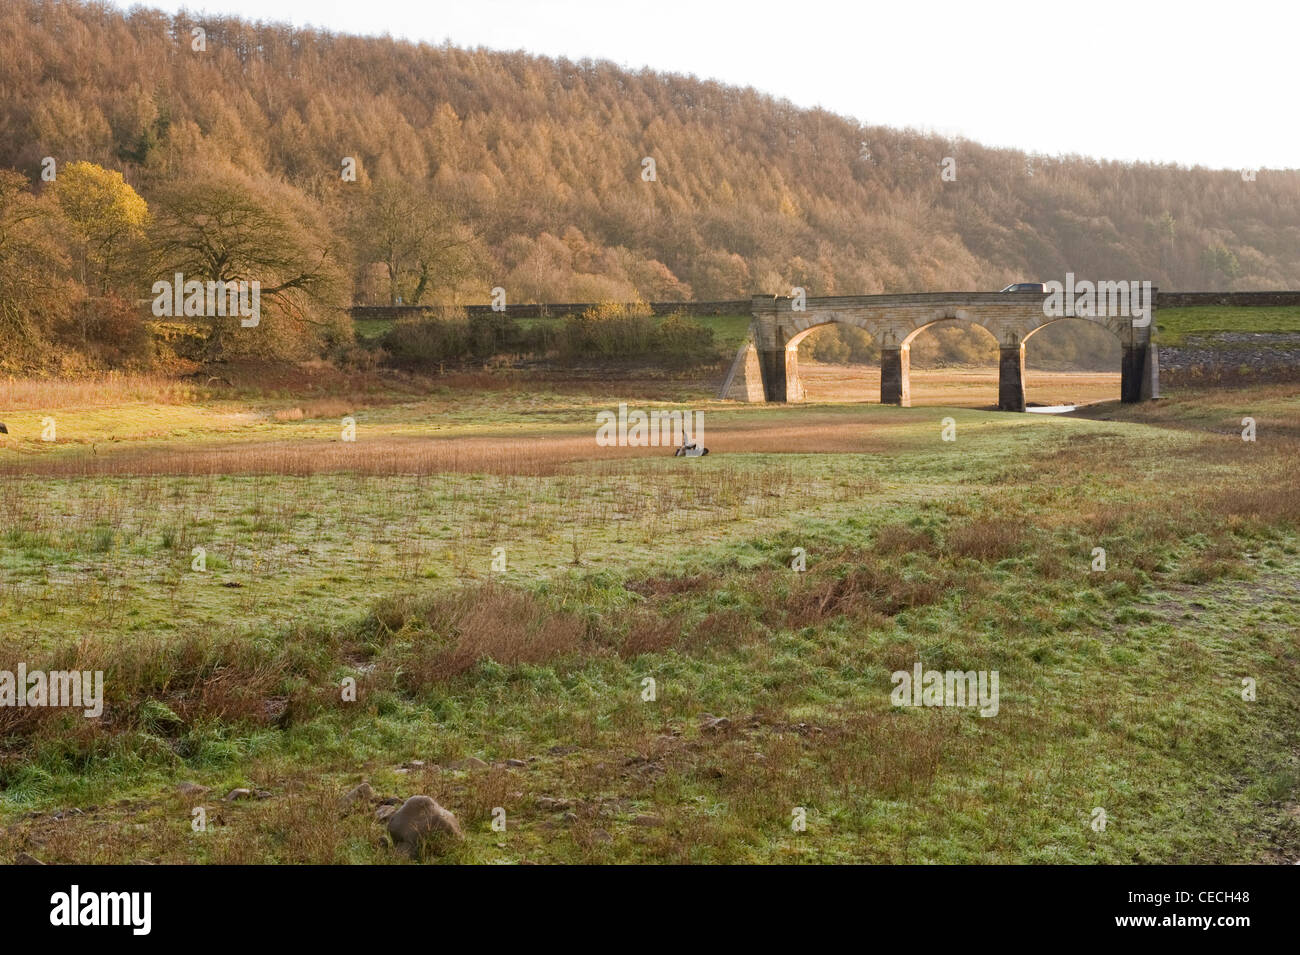 Lindley Wood Reservoir during a period of drought. - Stock Image